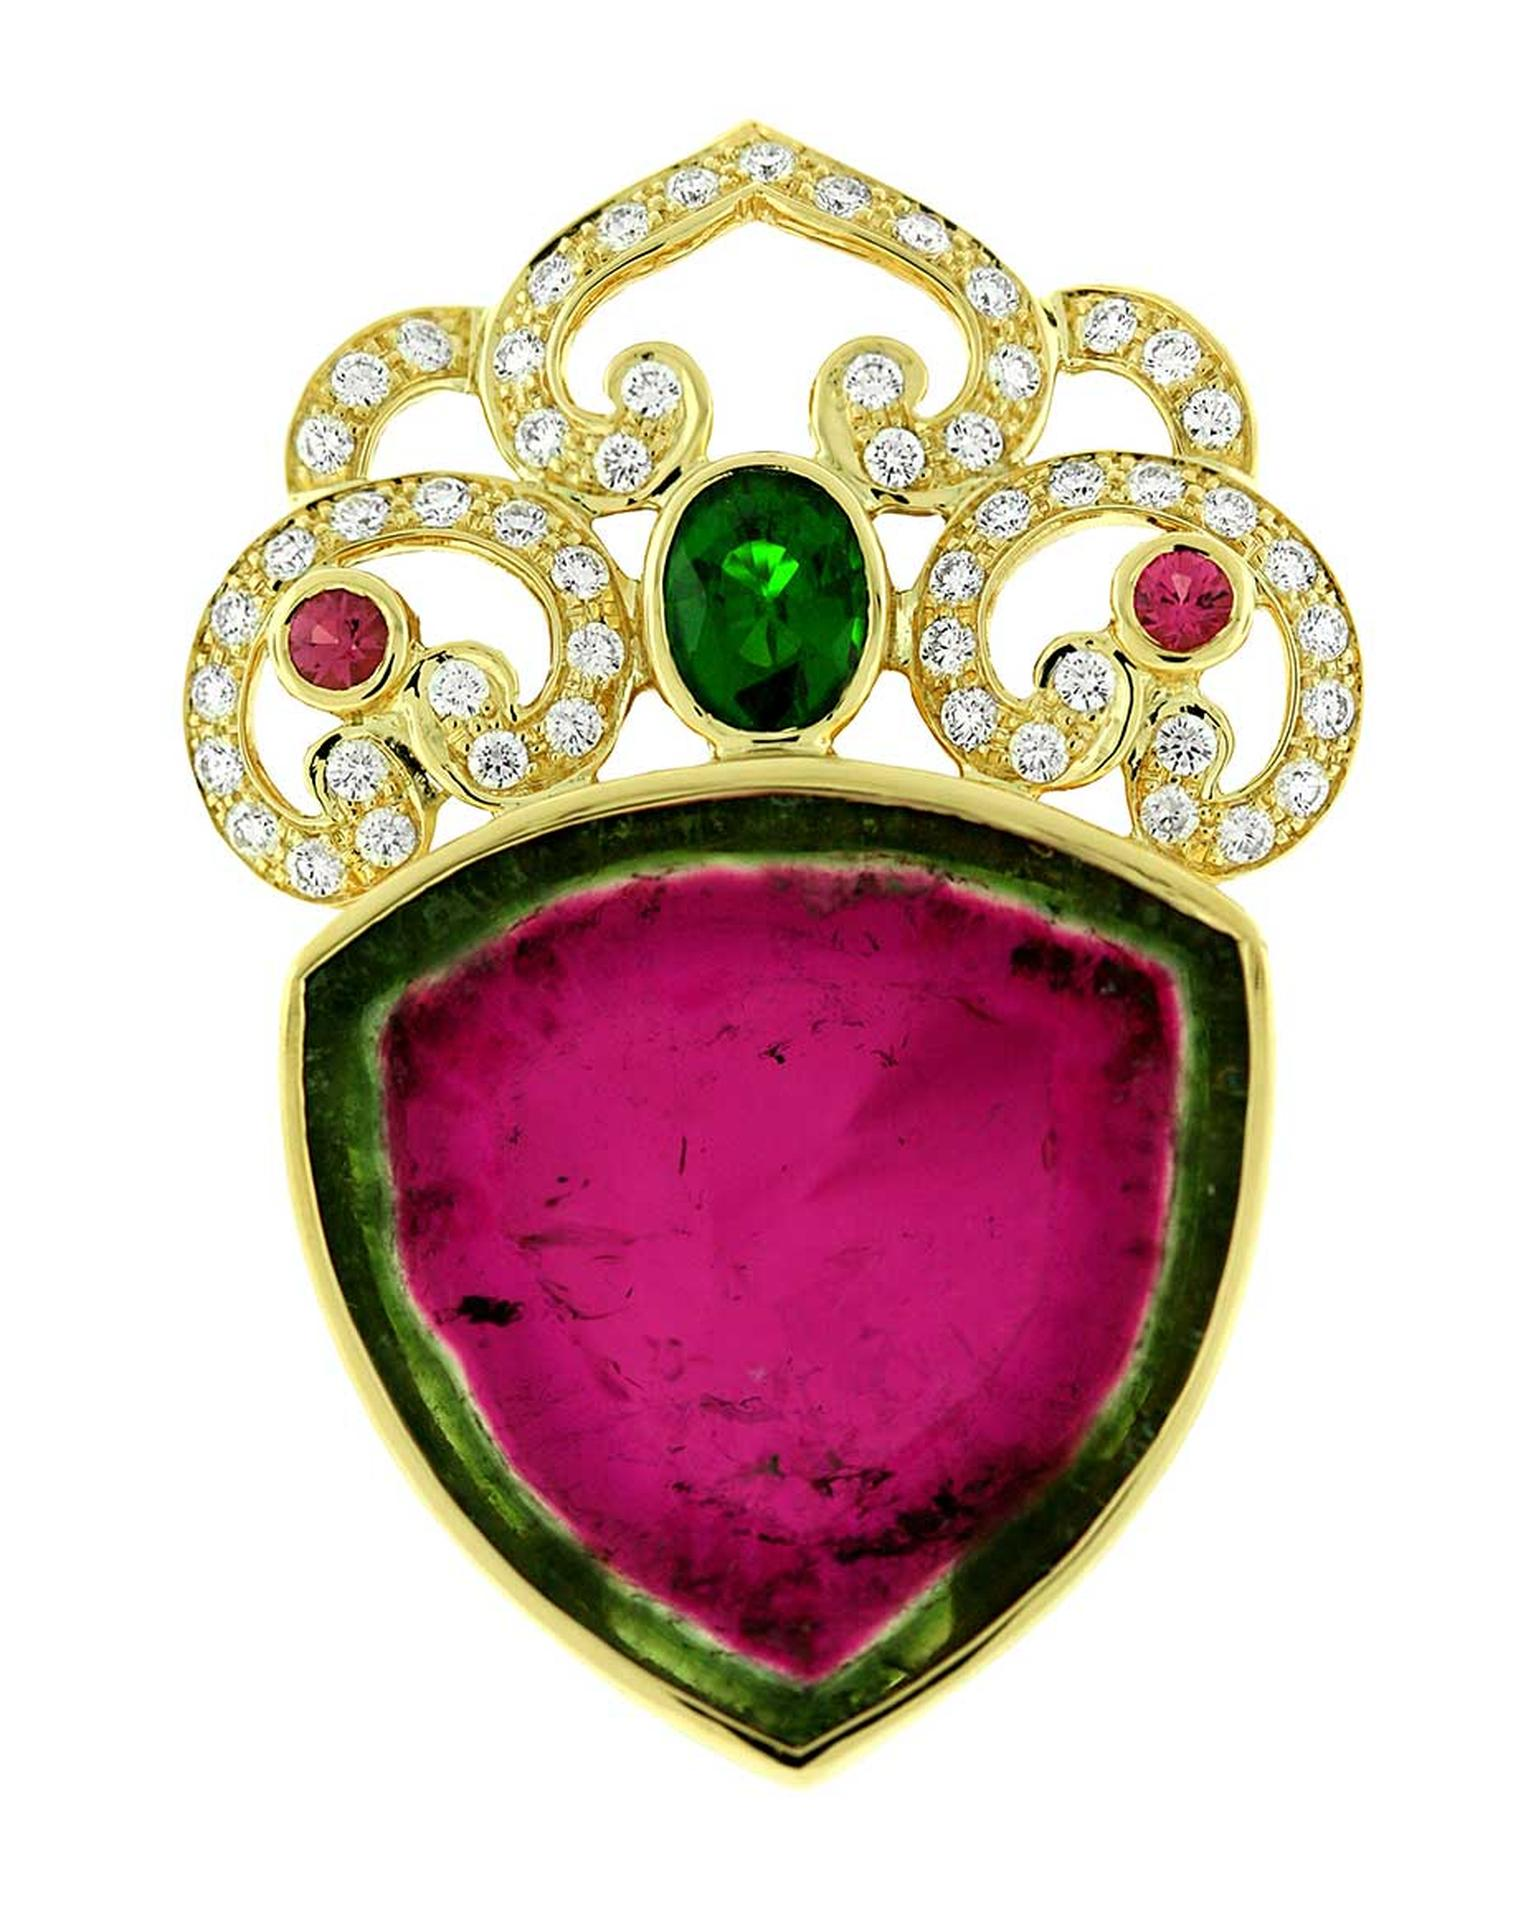 Paula Crevoshay Nature's Heart pendant in gold, with a 51.05ct watermelon tourmaline, tsavorite, pink tourmalines and diamonds